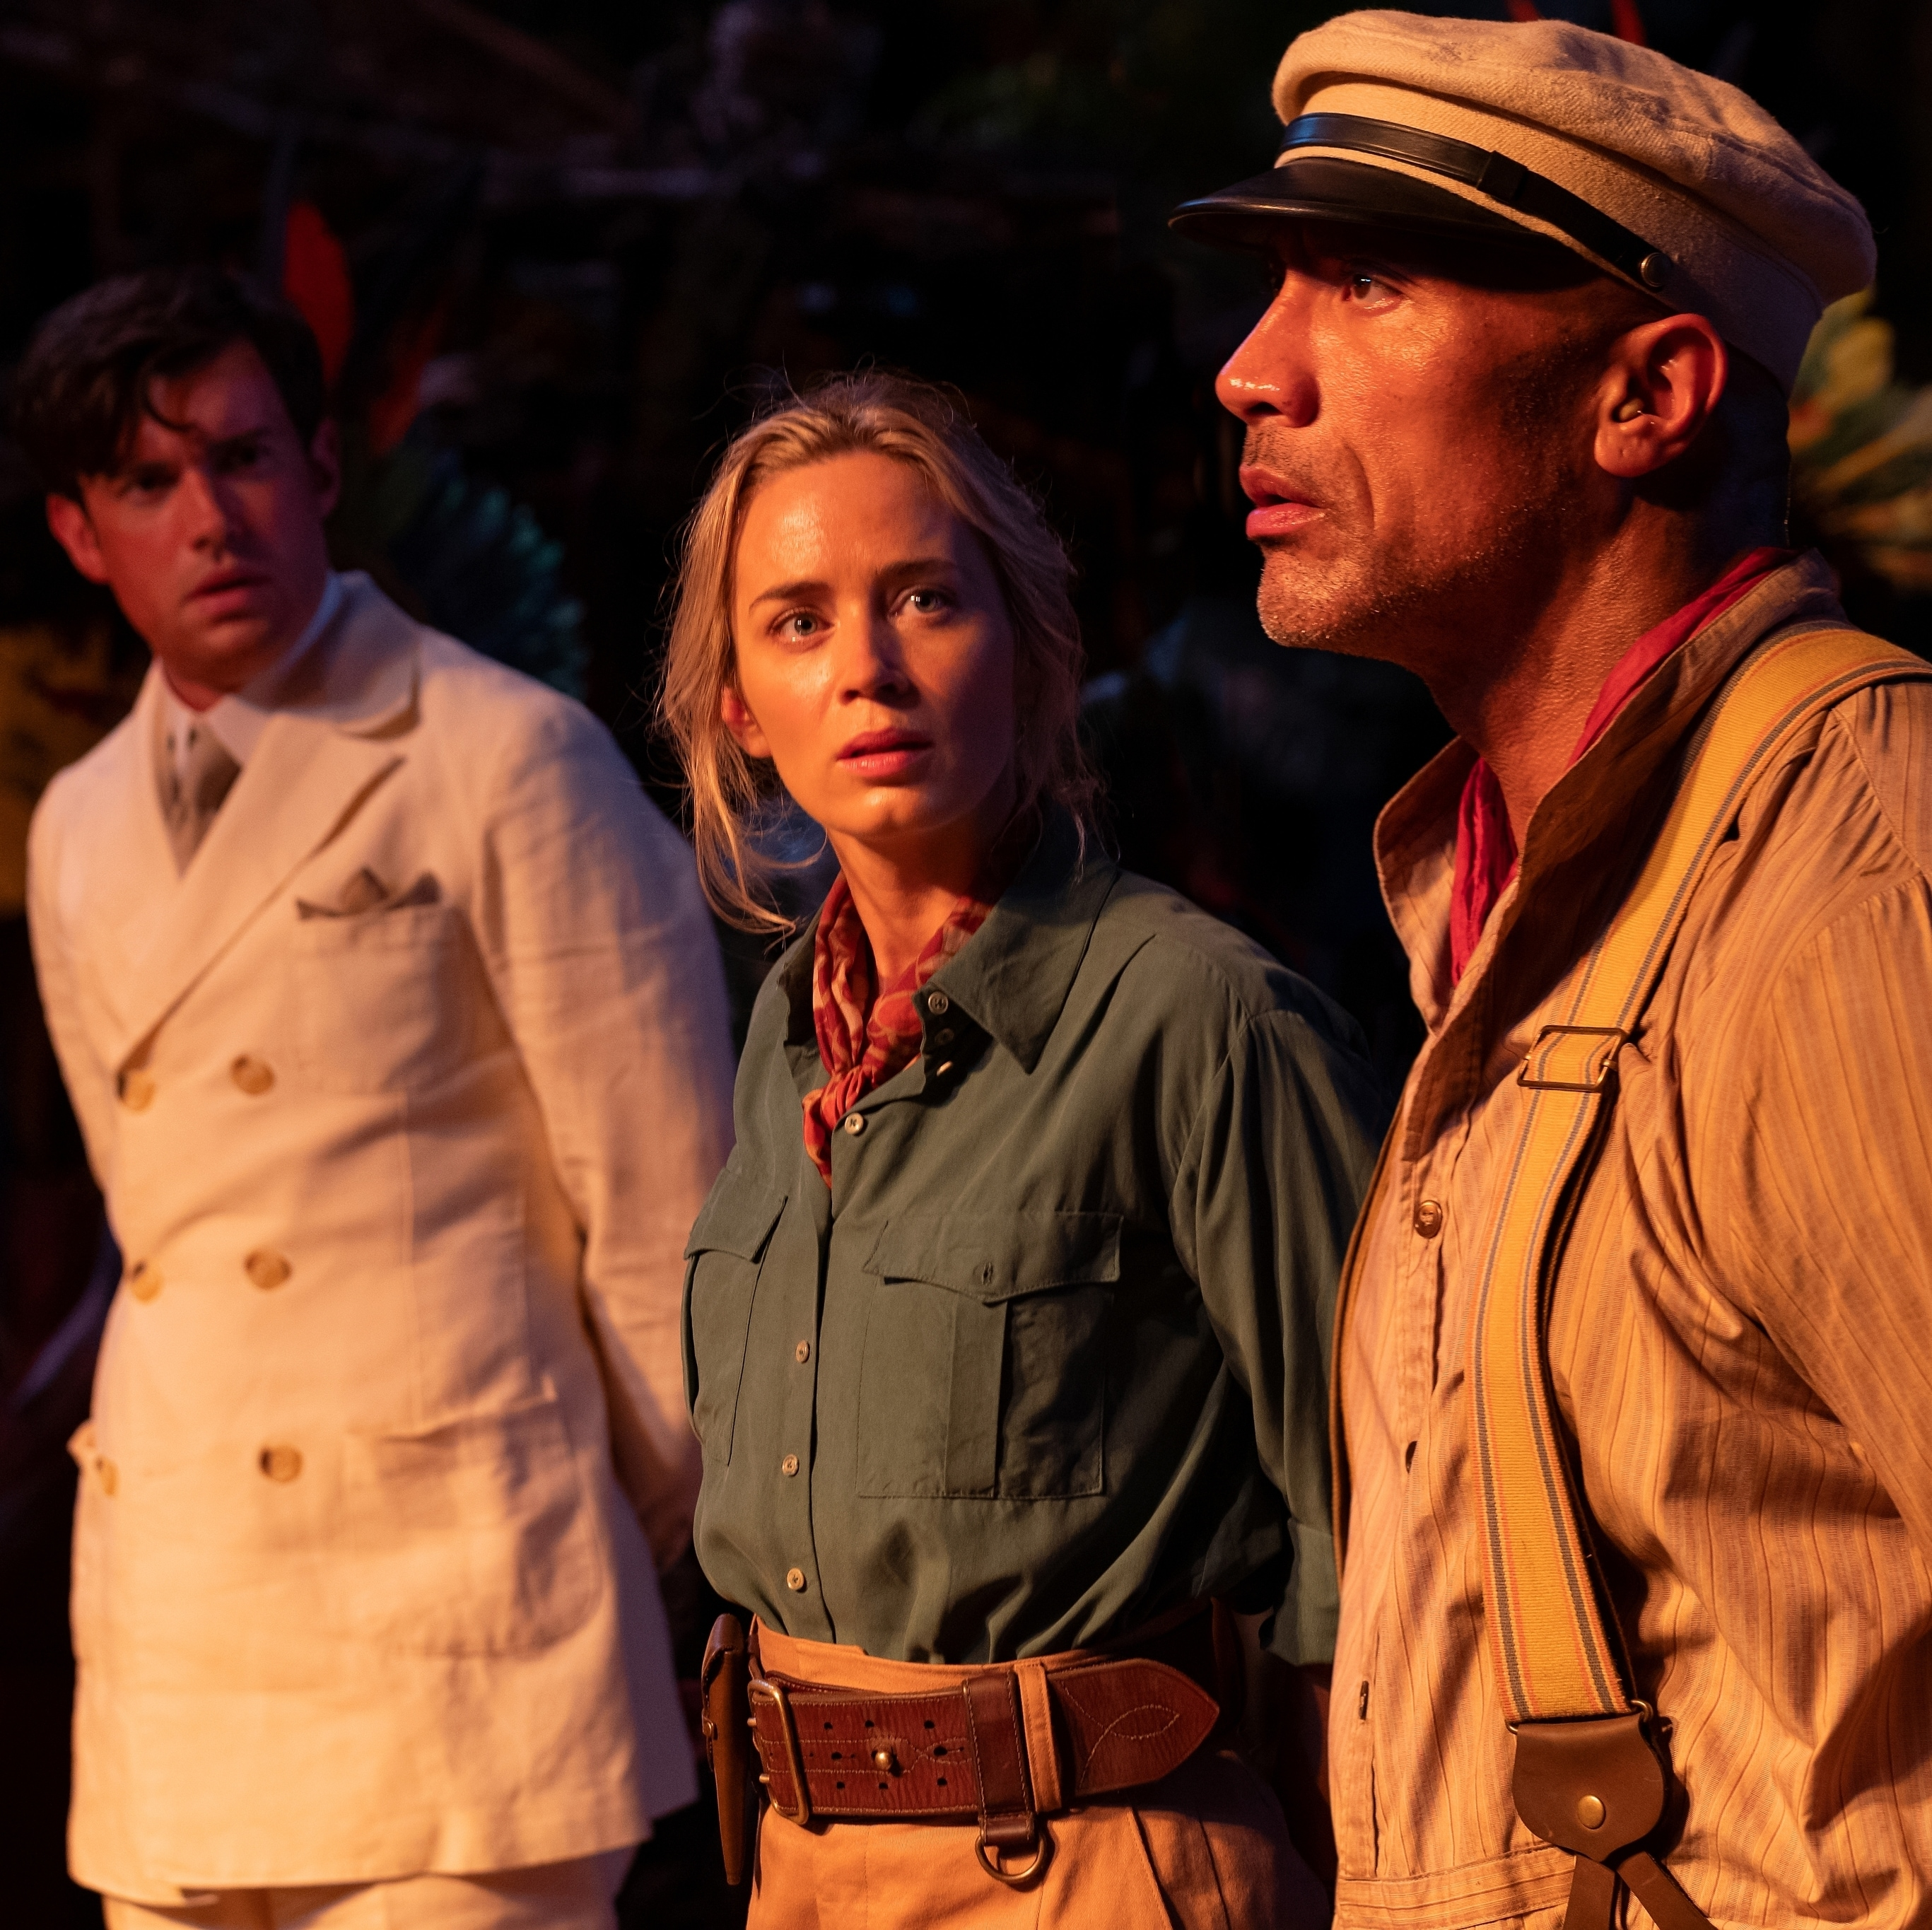 """New Trailer Released For Disney's """"Jungle Cruise"""" Starring Dwayne Johnson And Emily Blunt Coming To Theaters And On Disney+ With Premier Access July 30"""